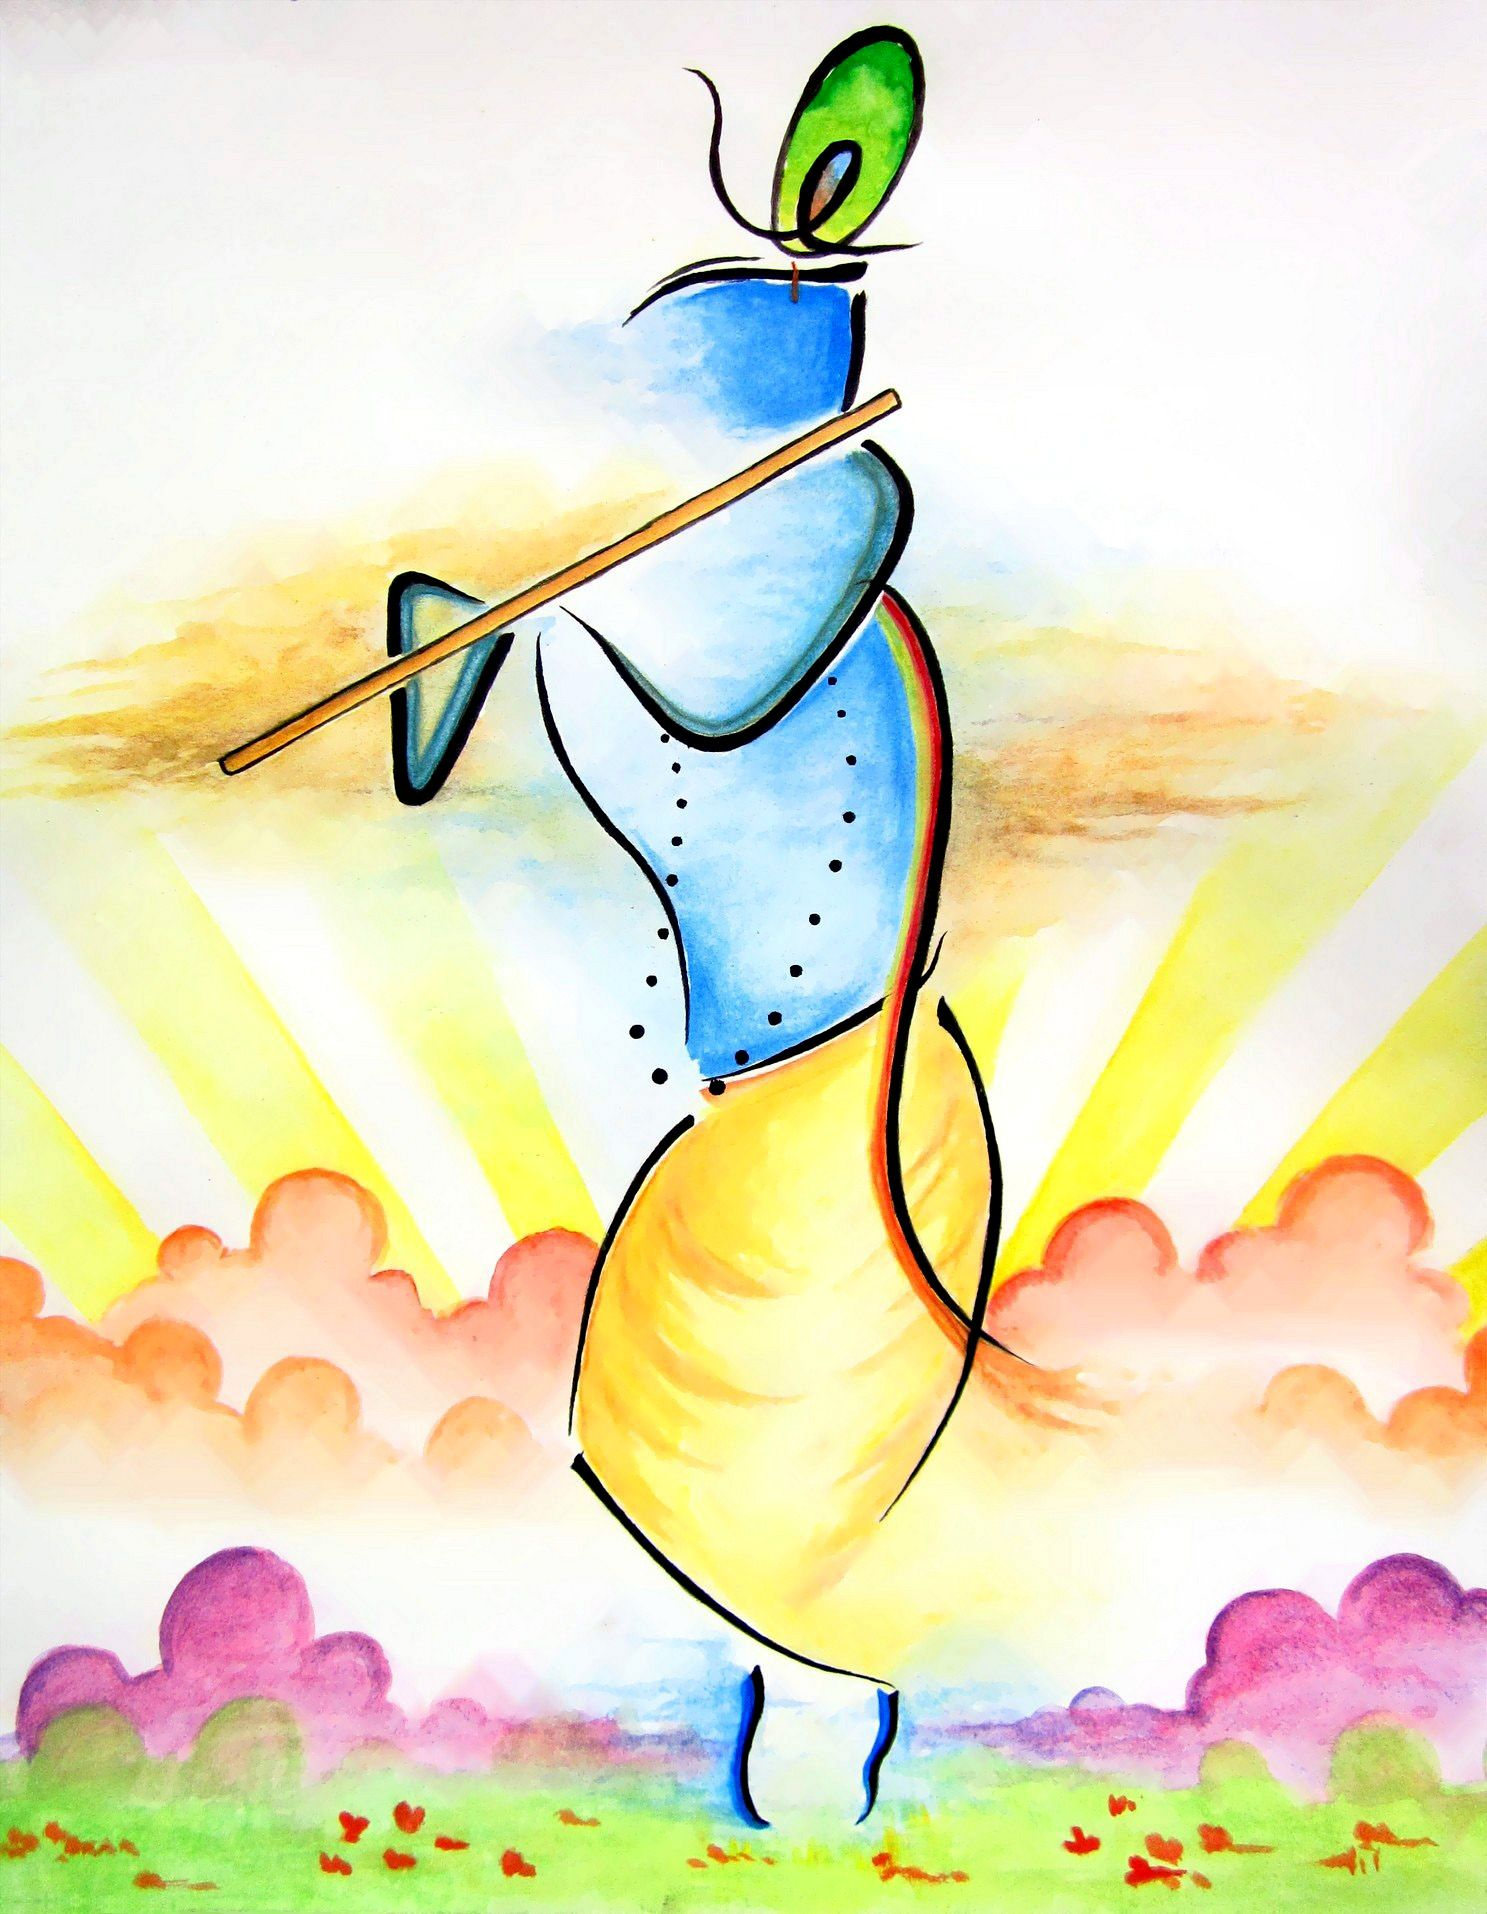 I Recently Created An Abstract Lord Krishna Painting In Watercolor With The